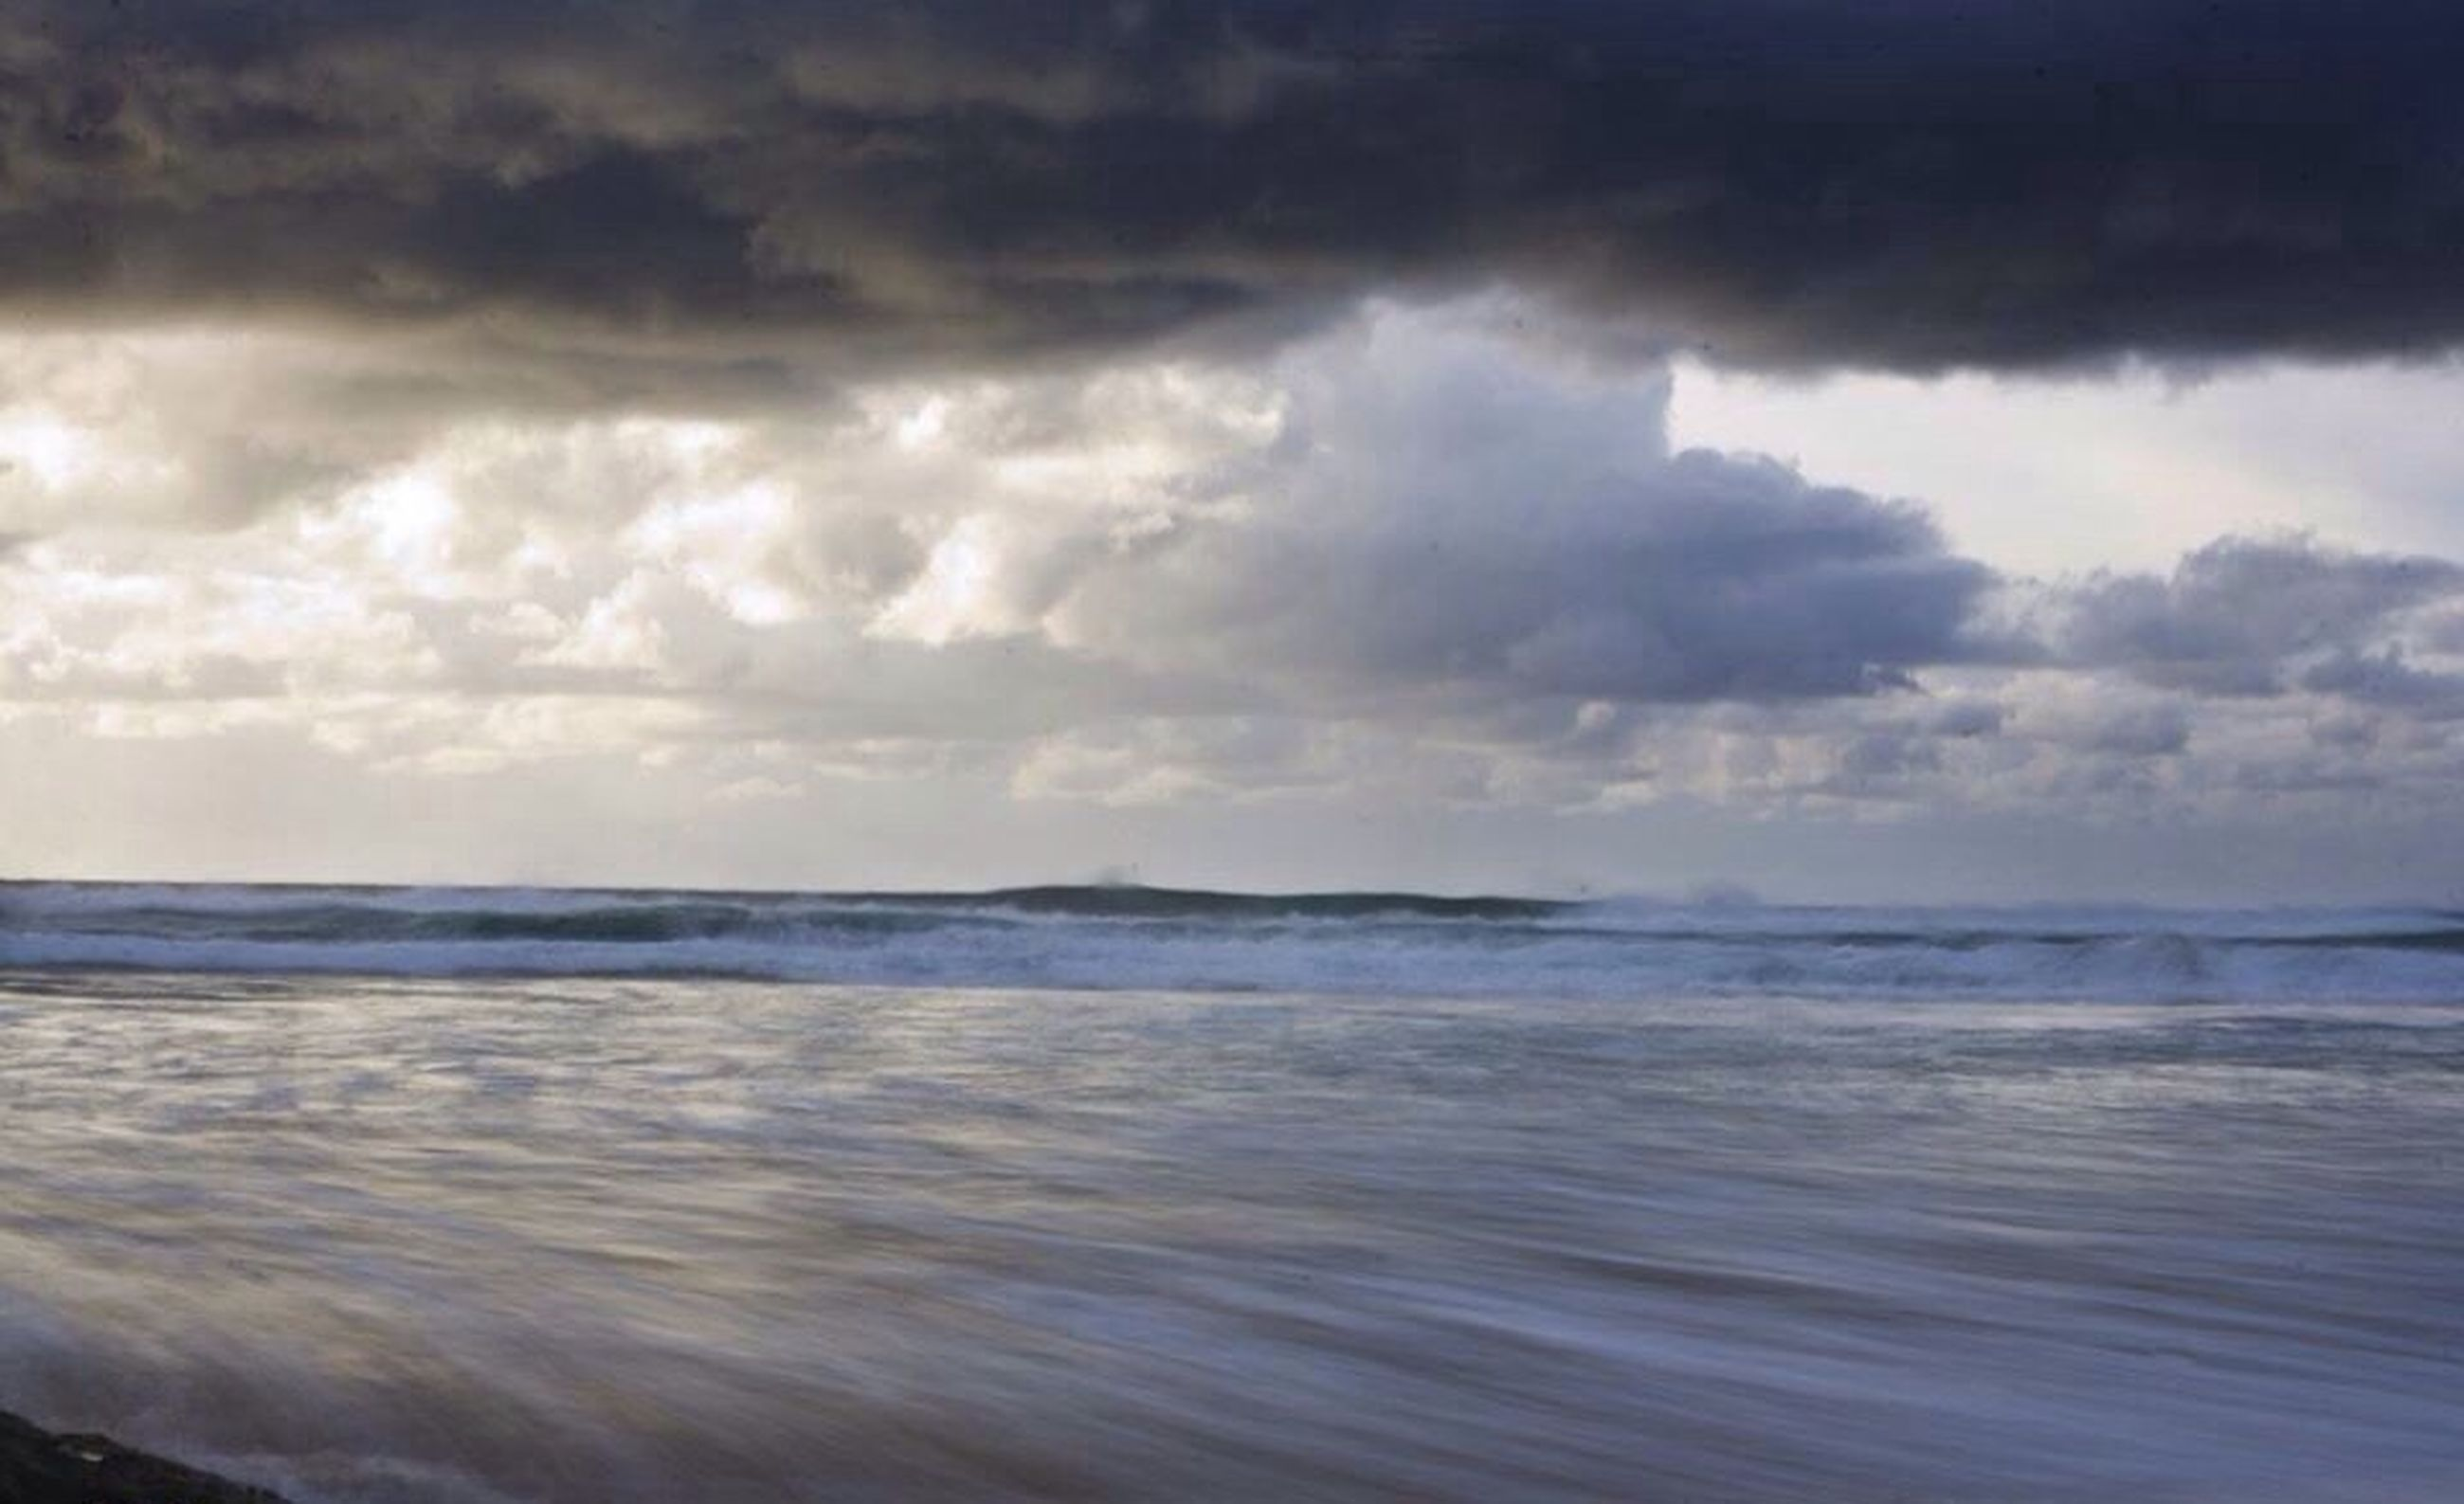 sea, water, sky, horizon over water, cloud - sky, scenics, cloudy, beauty in nature, tranquil scene, tranquility, beach, nature, wave, weather, overcast, storm cloud, shore, cloud, idyllic, waterfront